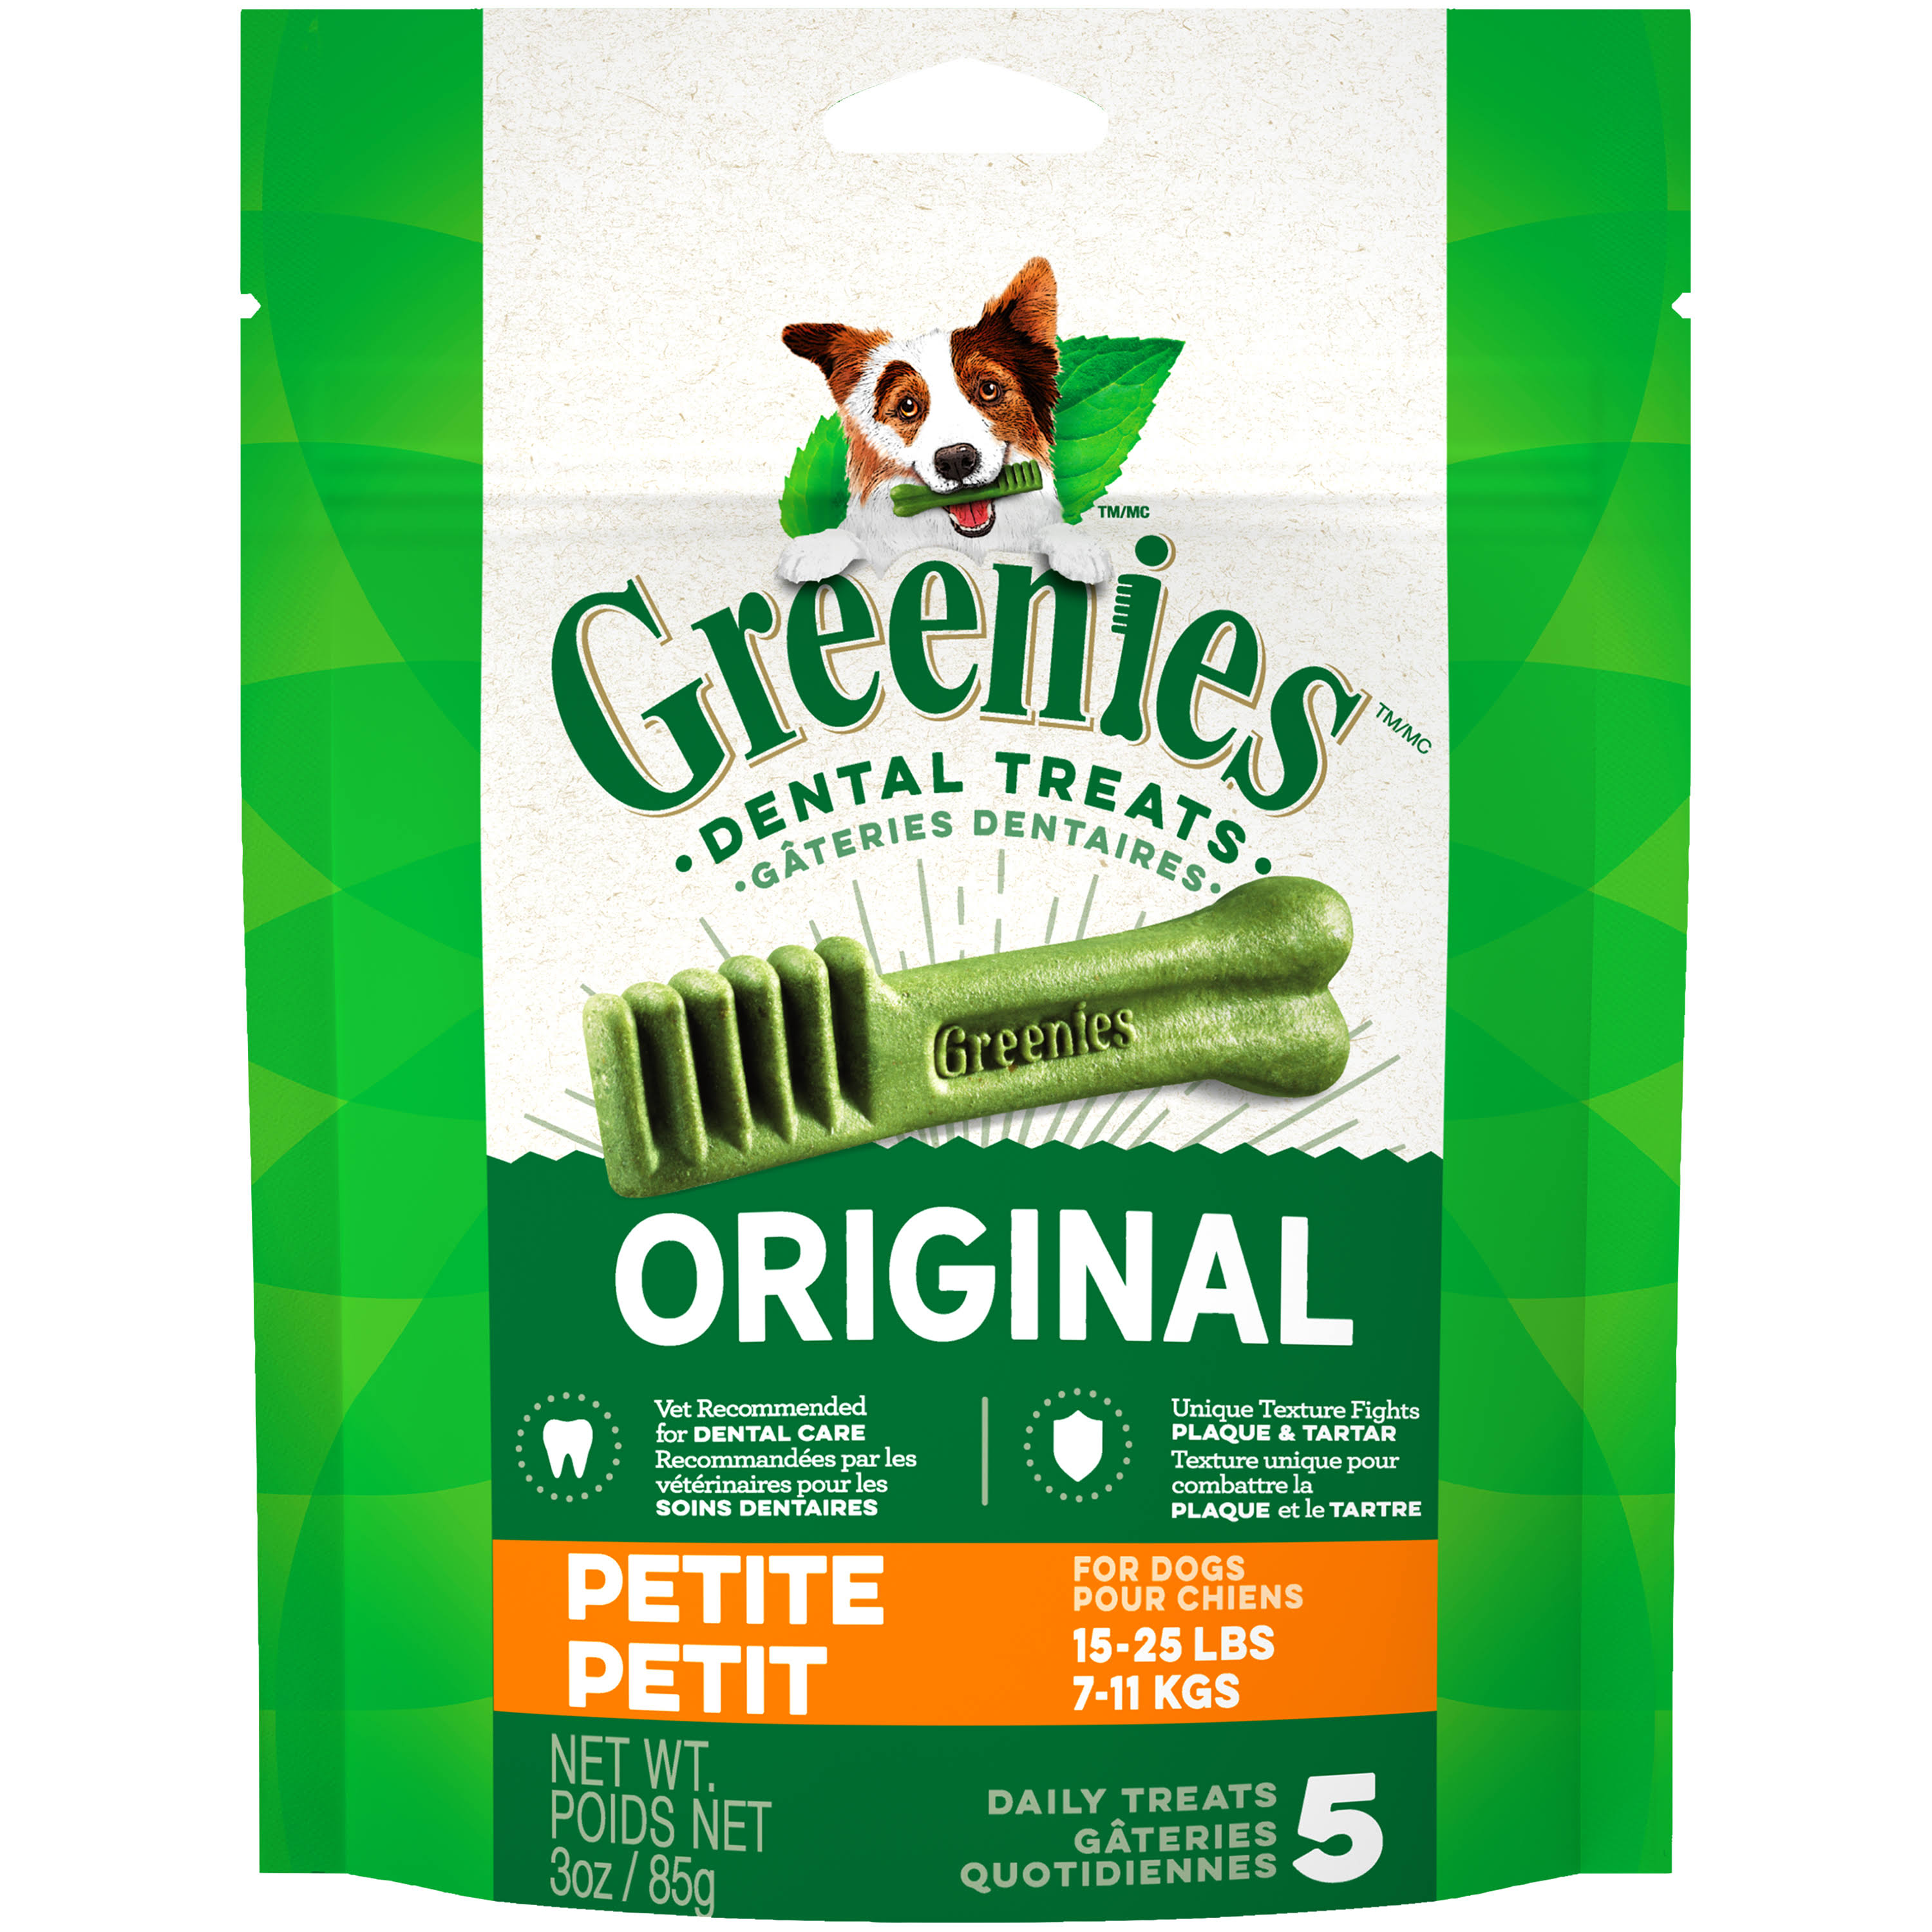 Greenies Original Petite Dog Dental Chews - 3oz, 5 Treats